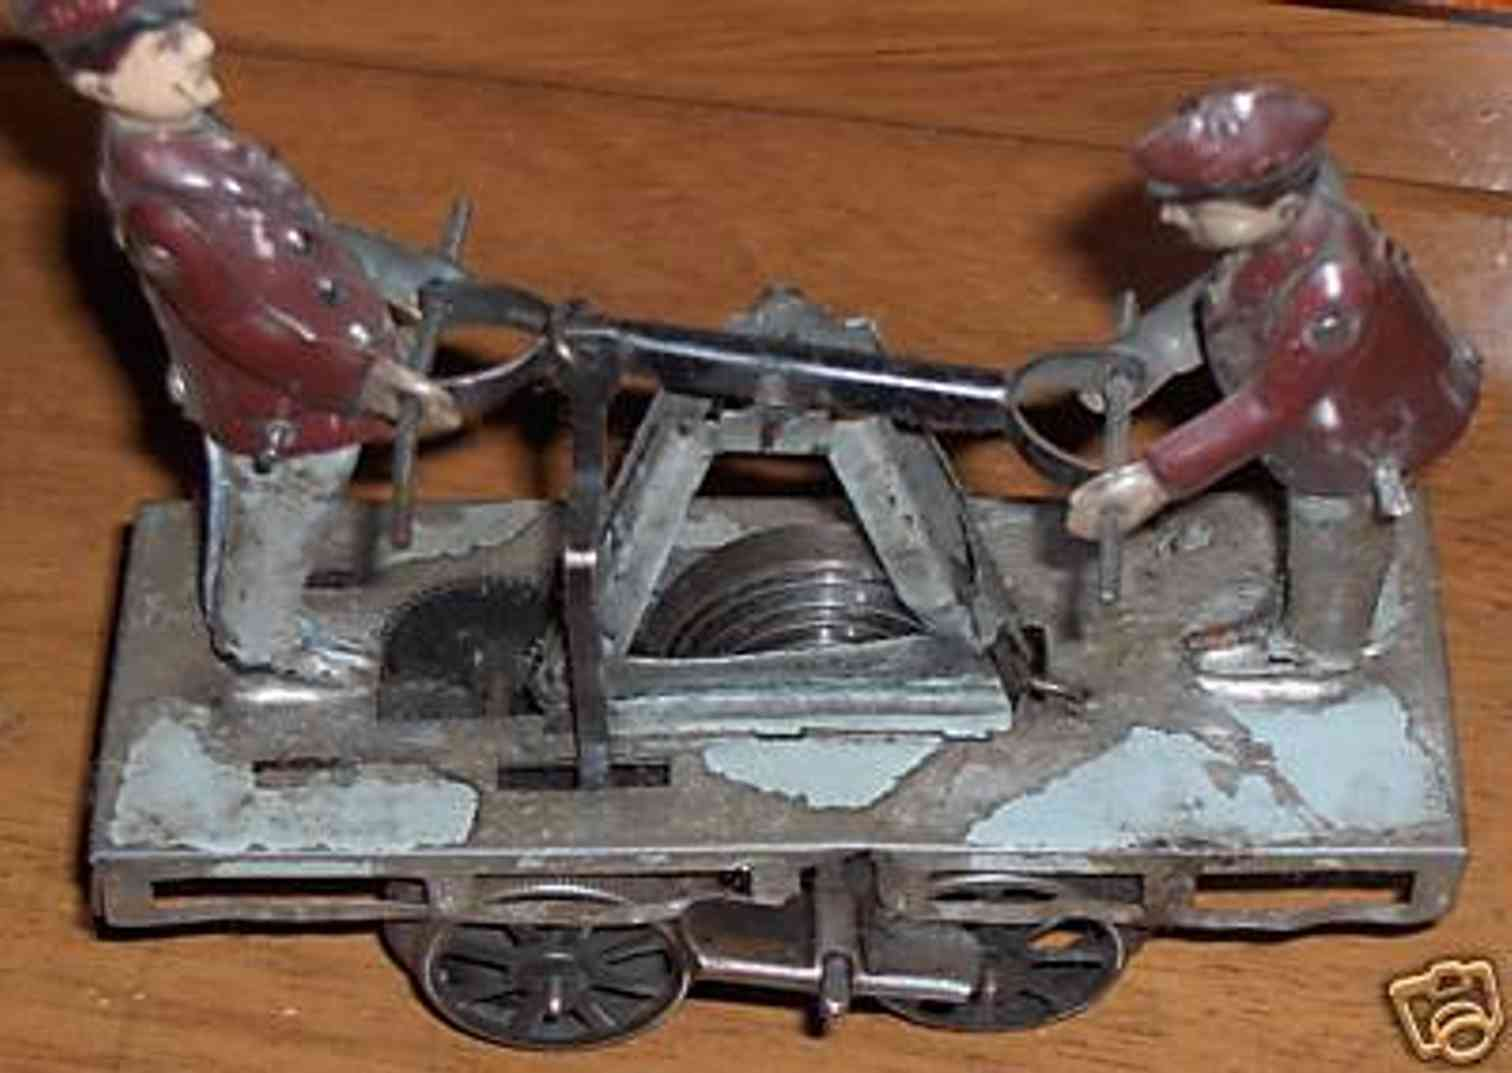 guenthermann railway toy draisine handcart clockwork two figures